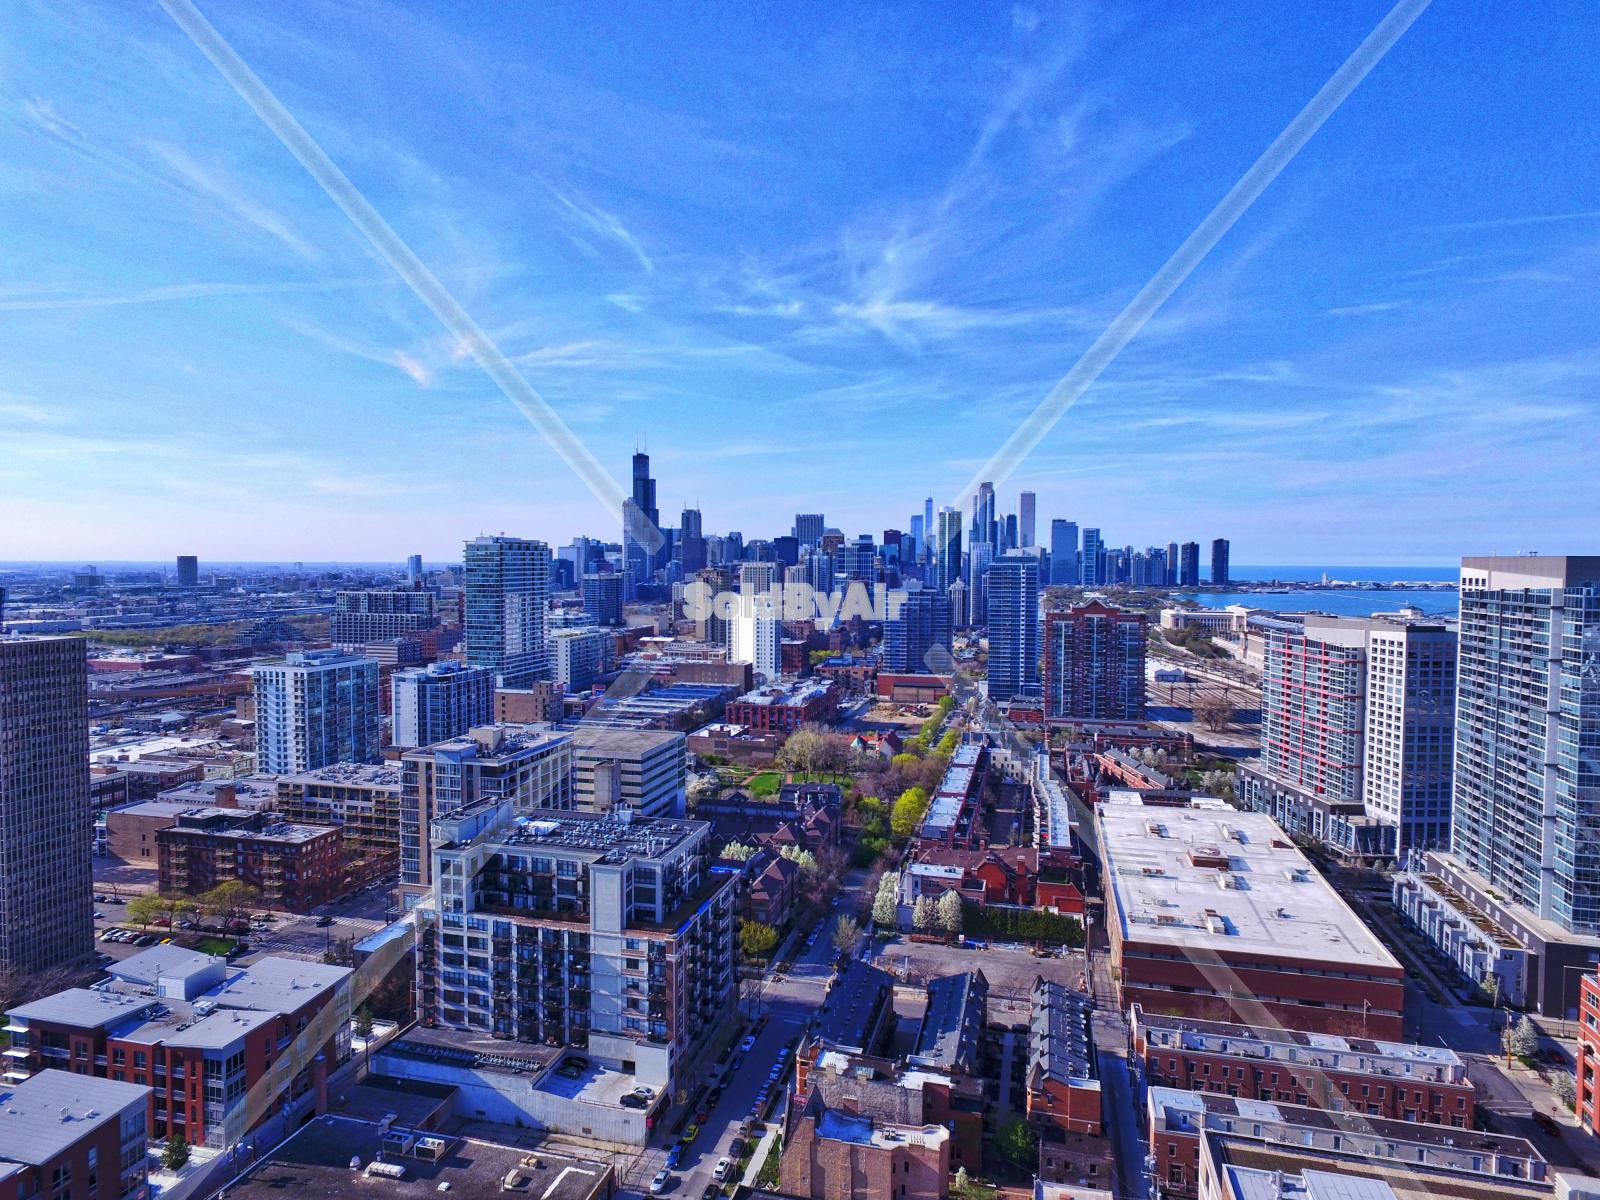 Drone Photo of Skyline from South Loop vantage point. in Chicago Illinois